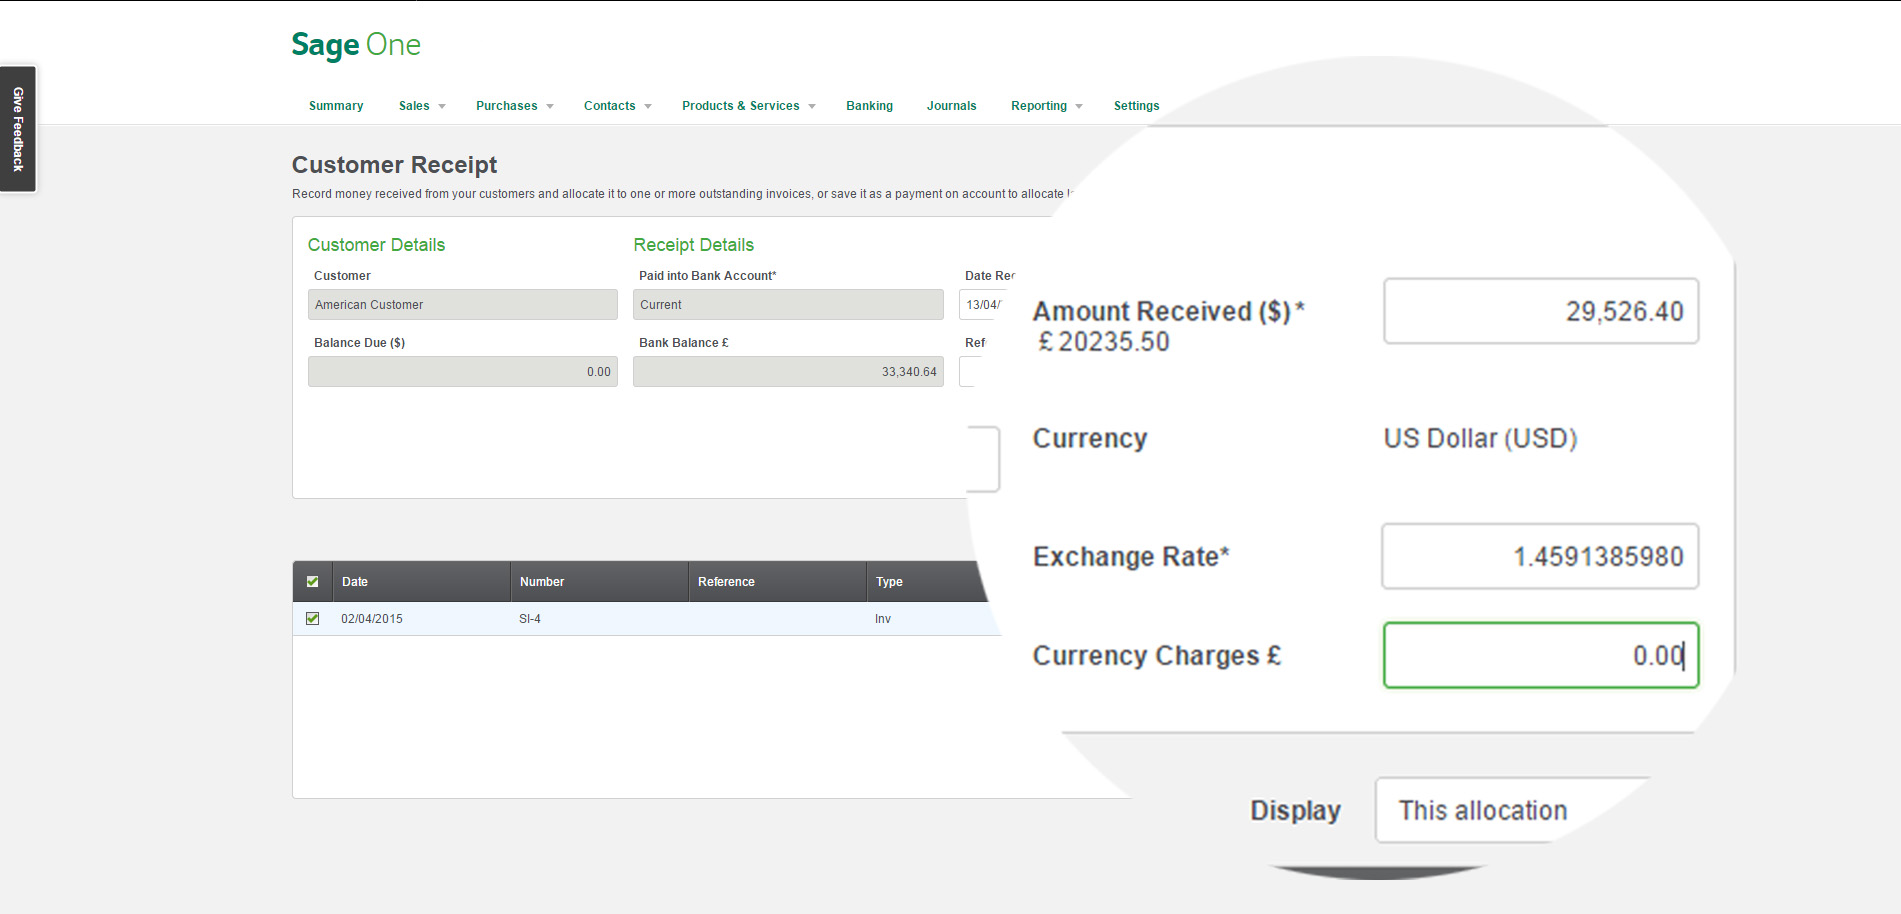 You can even bank reconcile foreign currency transactions in Sage One. This screenshot shows a foreign currency transaction with the pound sterling exchange rate.